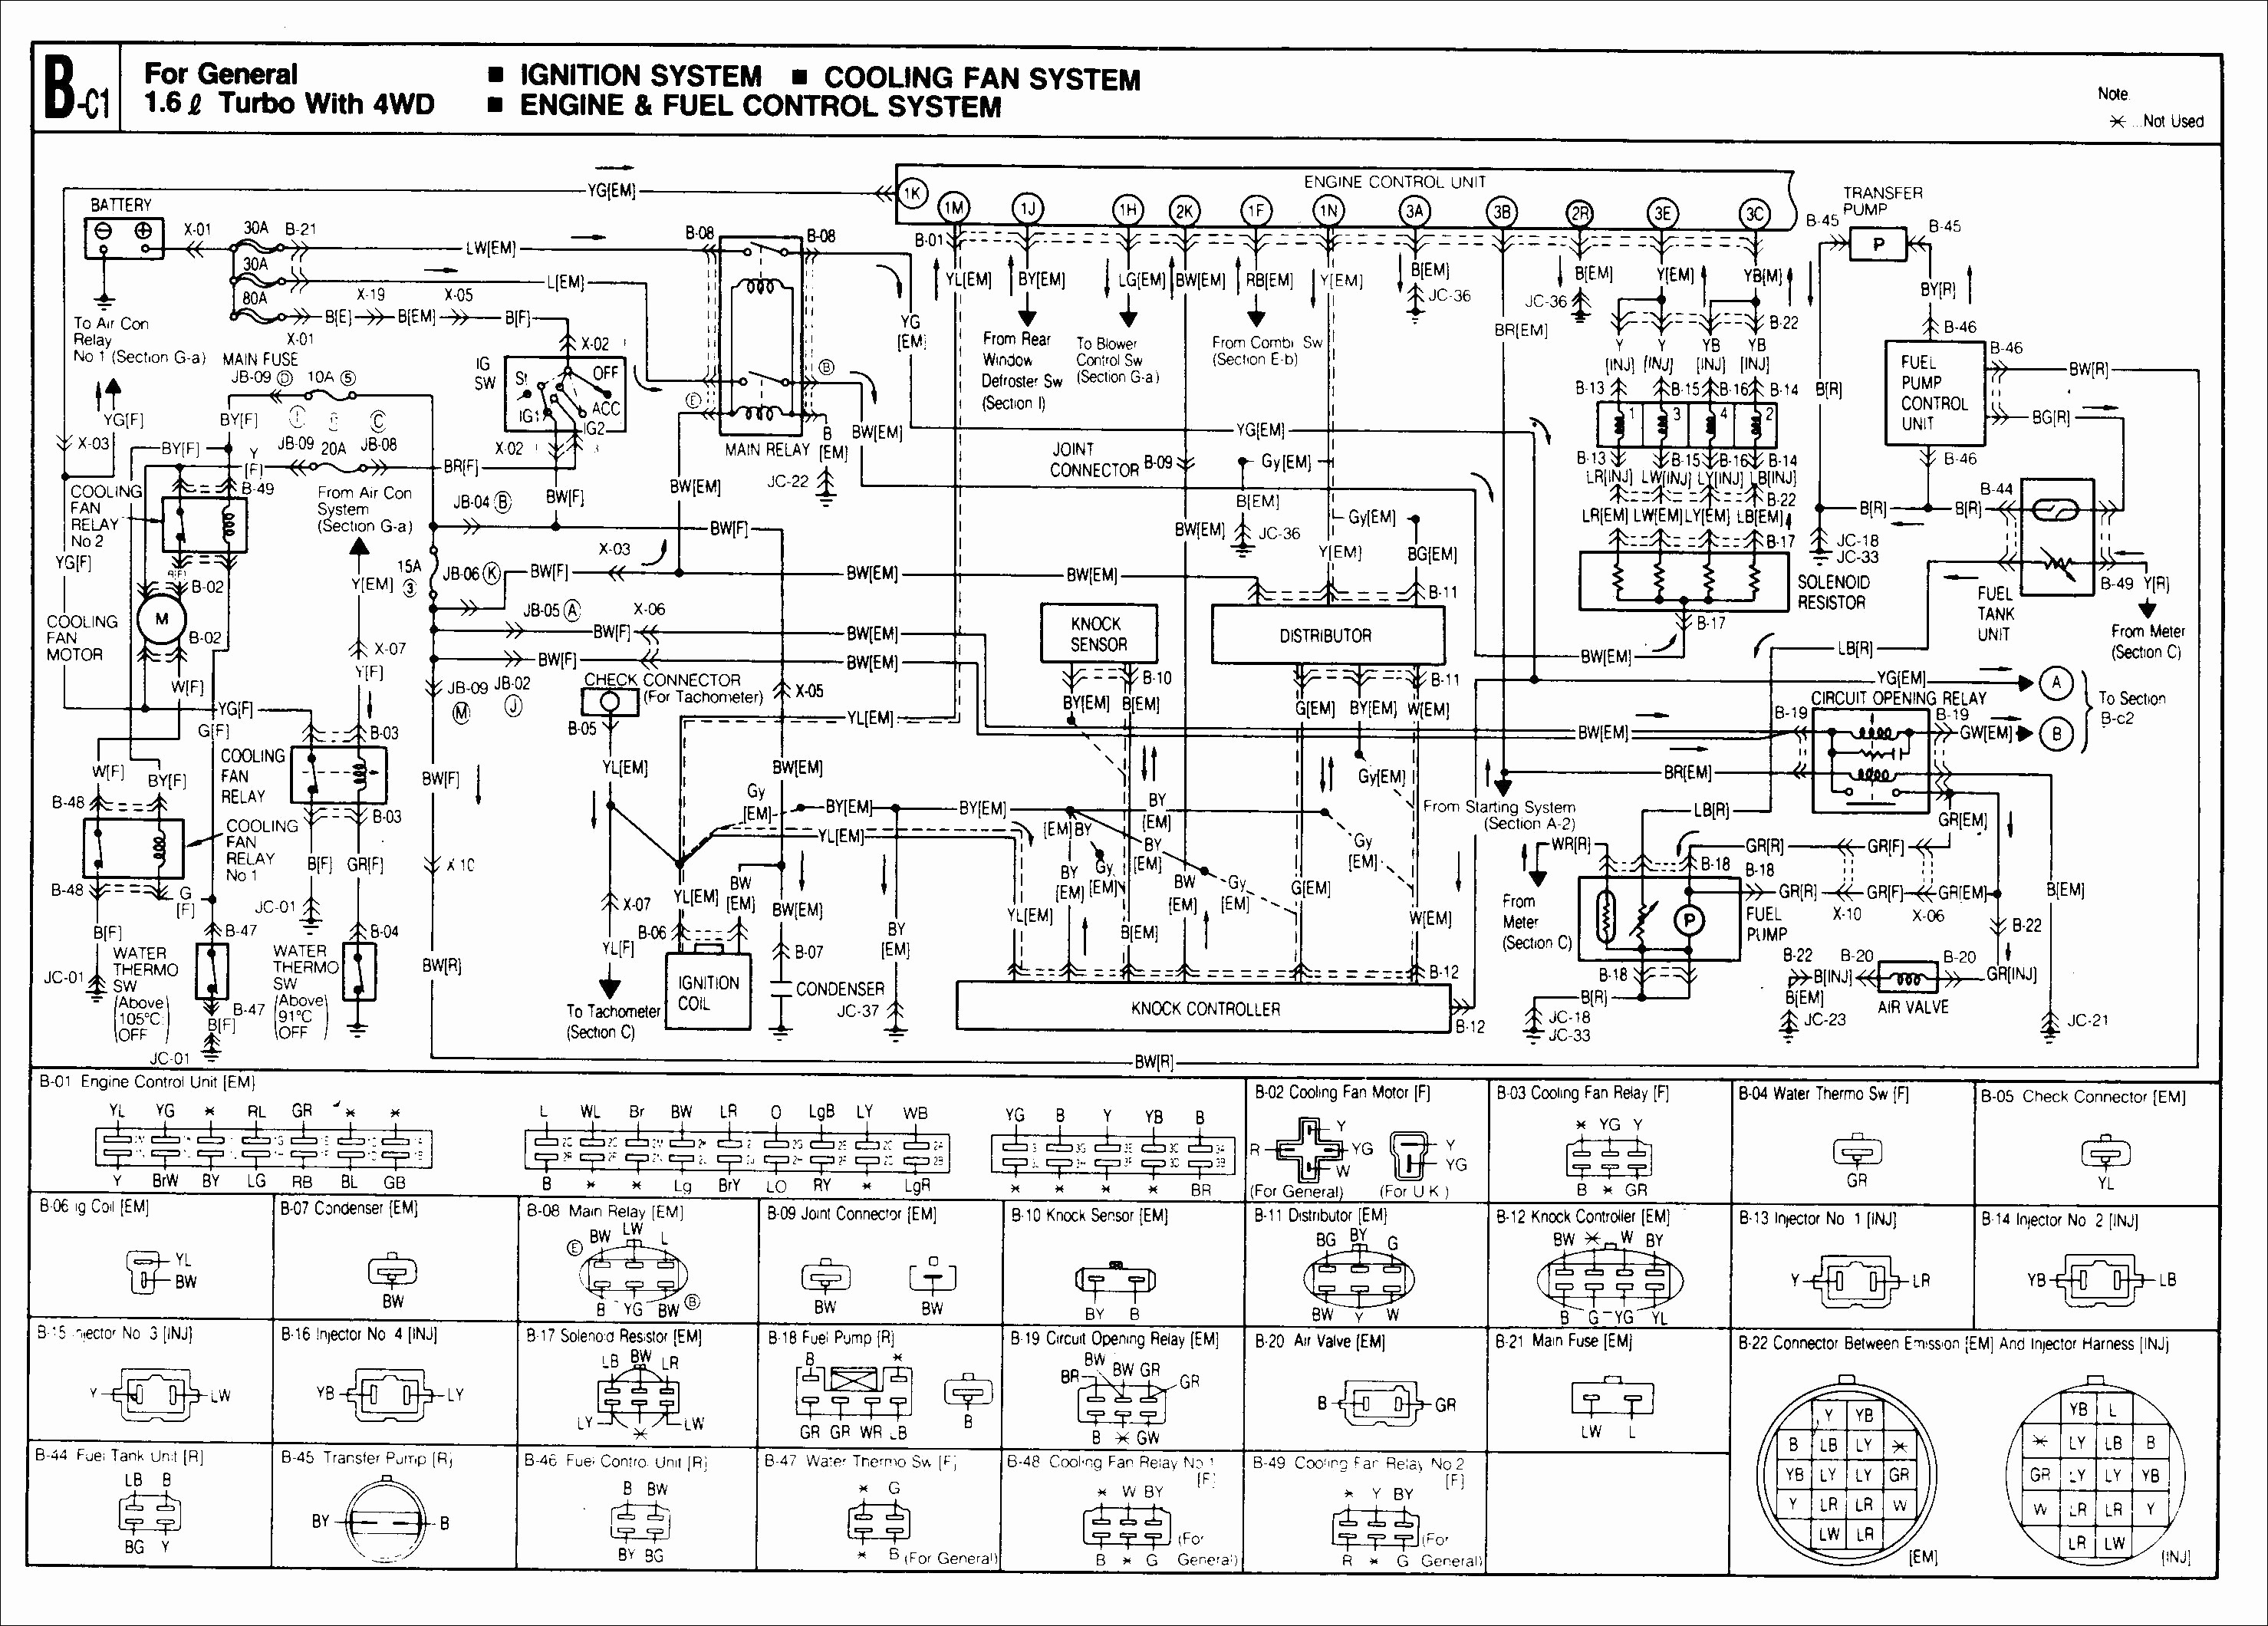 Bluebird Alternator Wiring Schematics Gm 2 Wire Diagram 3 4l V6 Engine Heater Core Hose